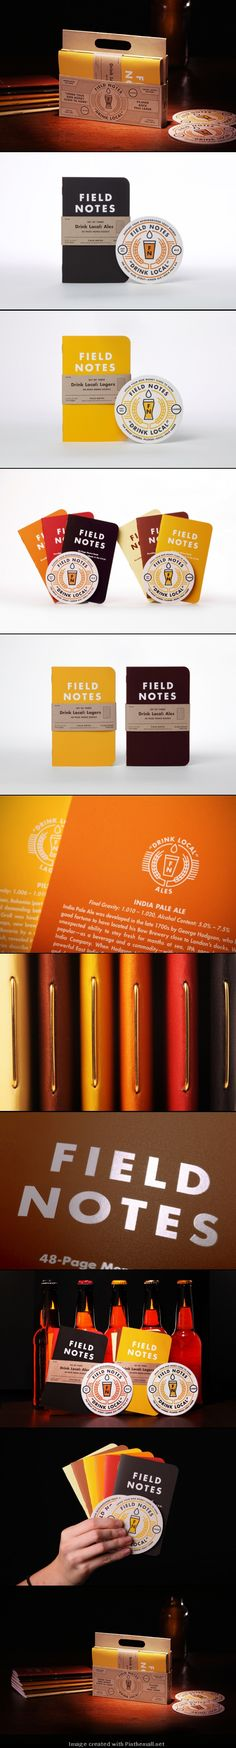 Field Notes Colors Notebook identity packaging branding PD